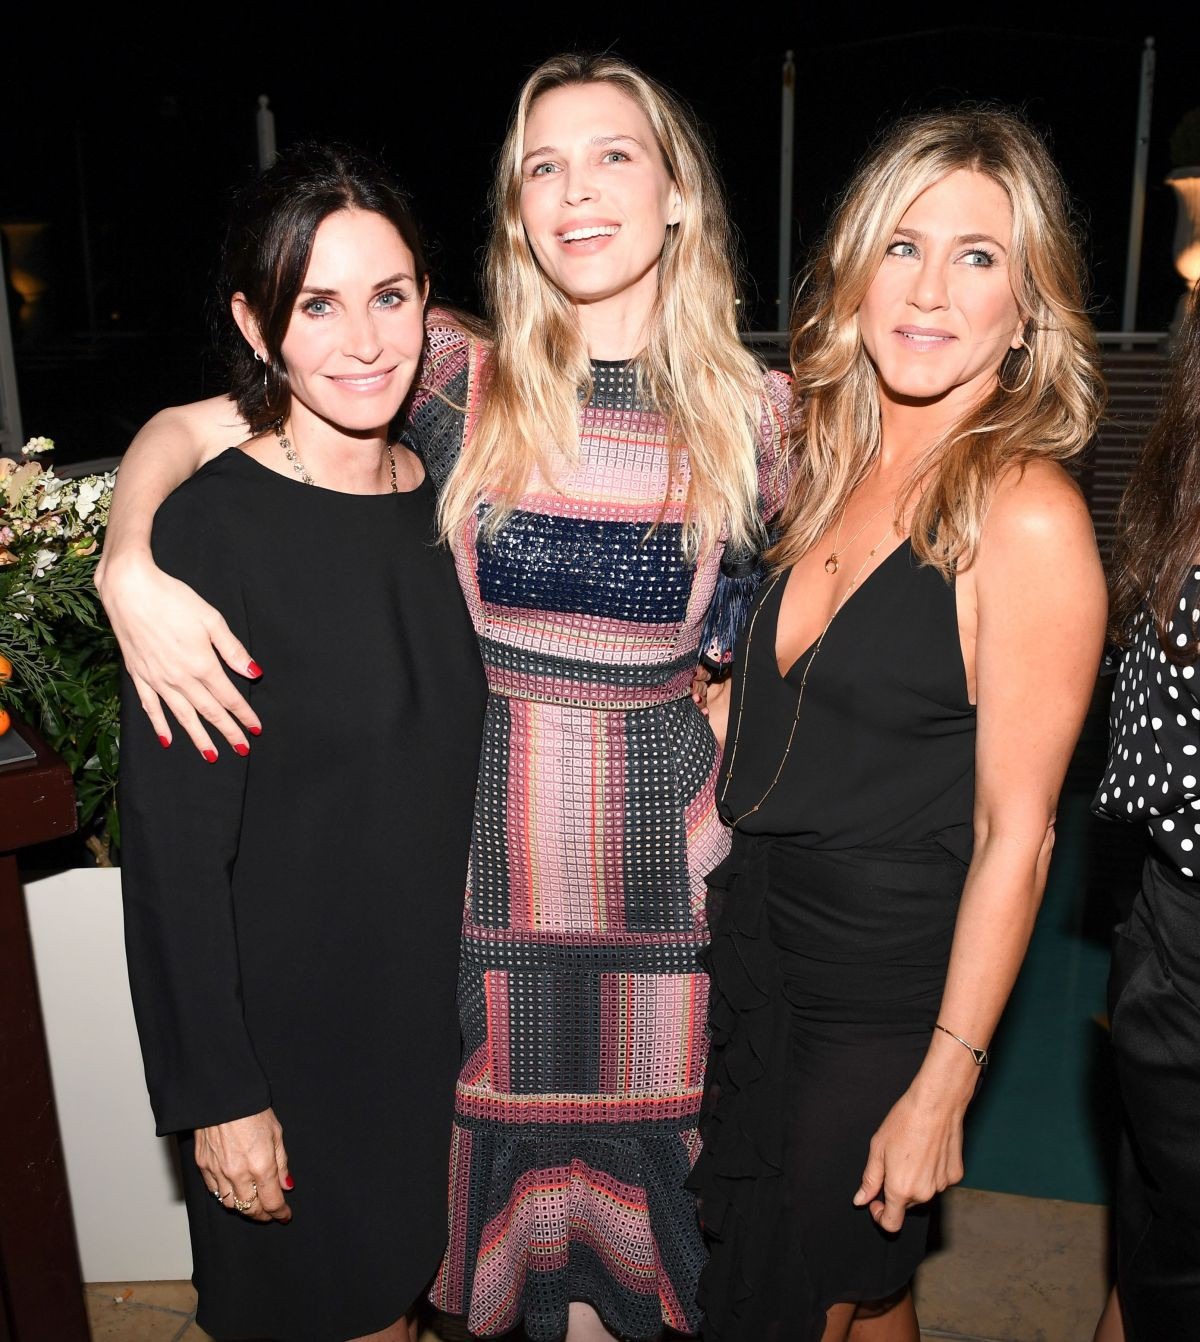 courteney-cox-at-tabitha-simmons-by-jennifer-aniston-dinner-in-west-hollywood-10-12-2017-2.jpg